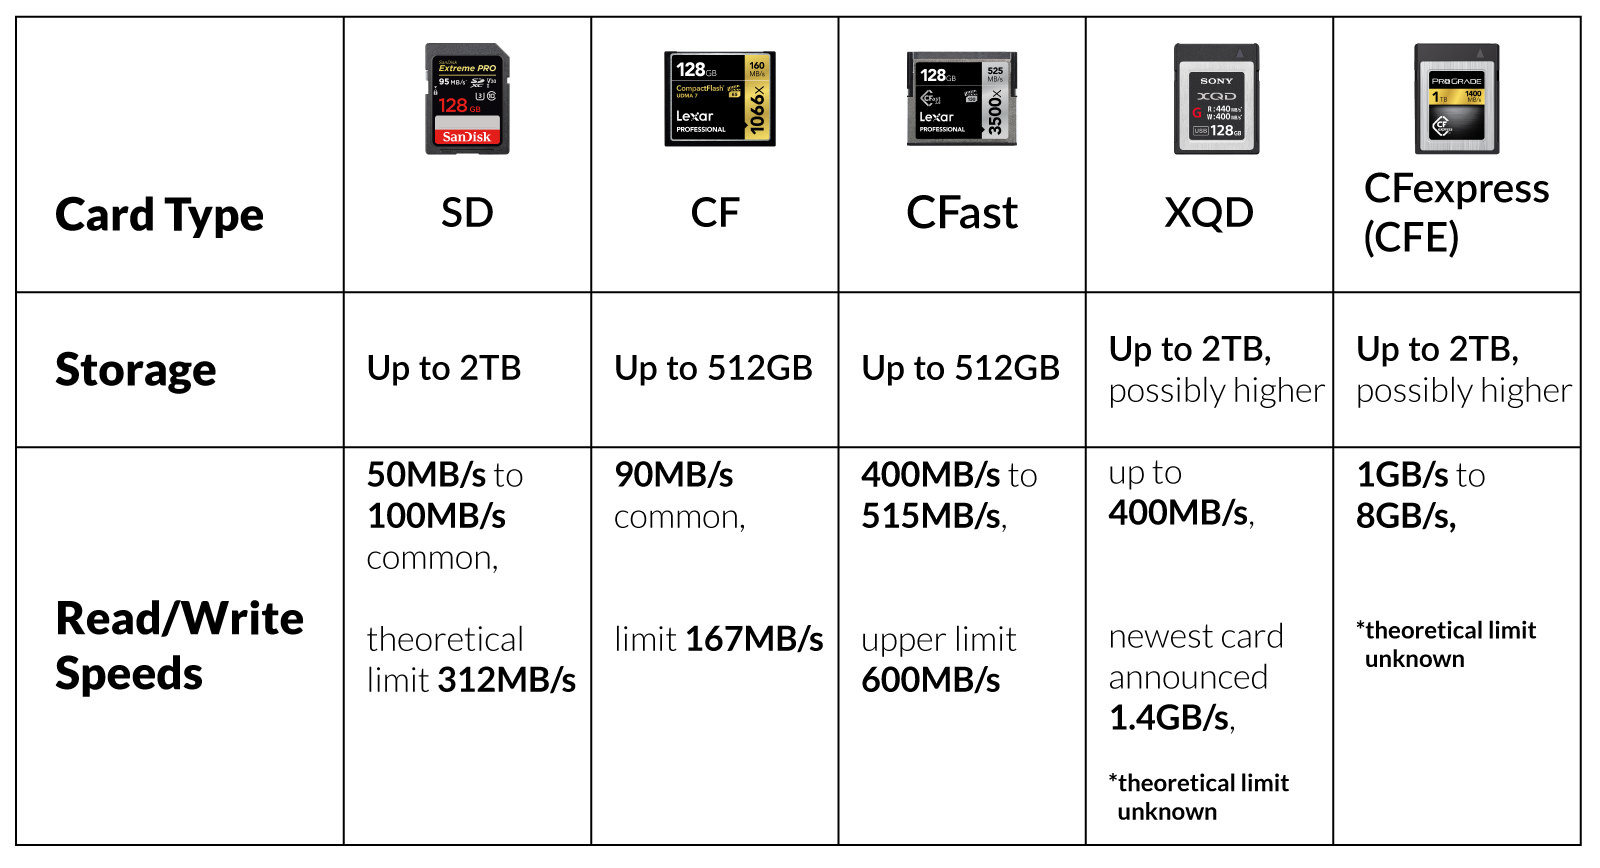 SD vs. CF vs. XQD memory card comparison